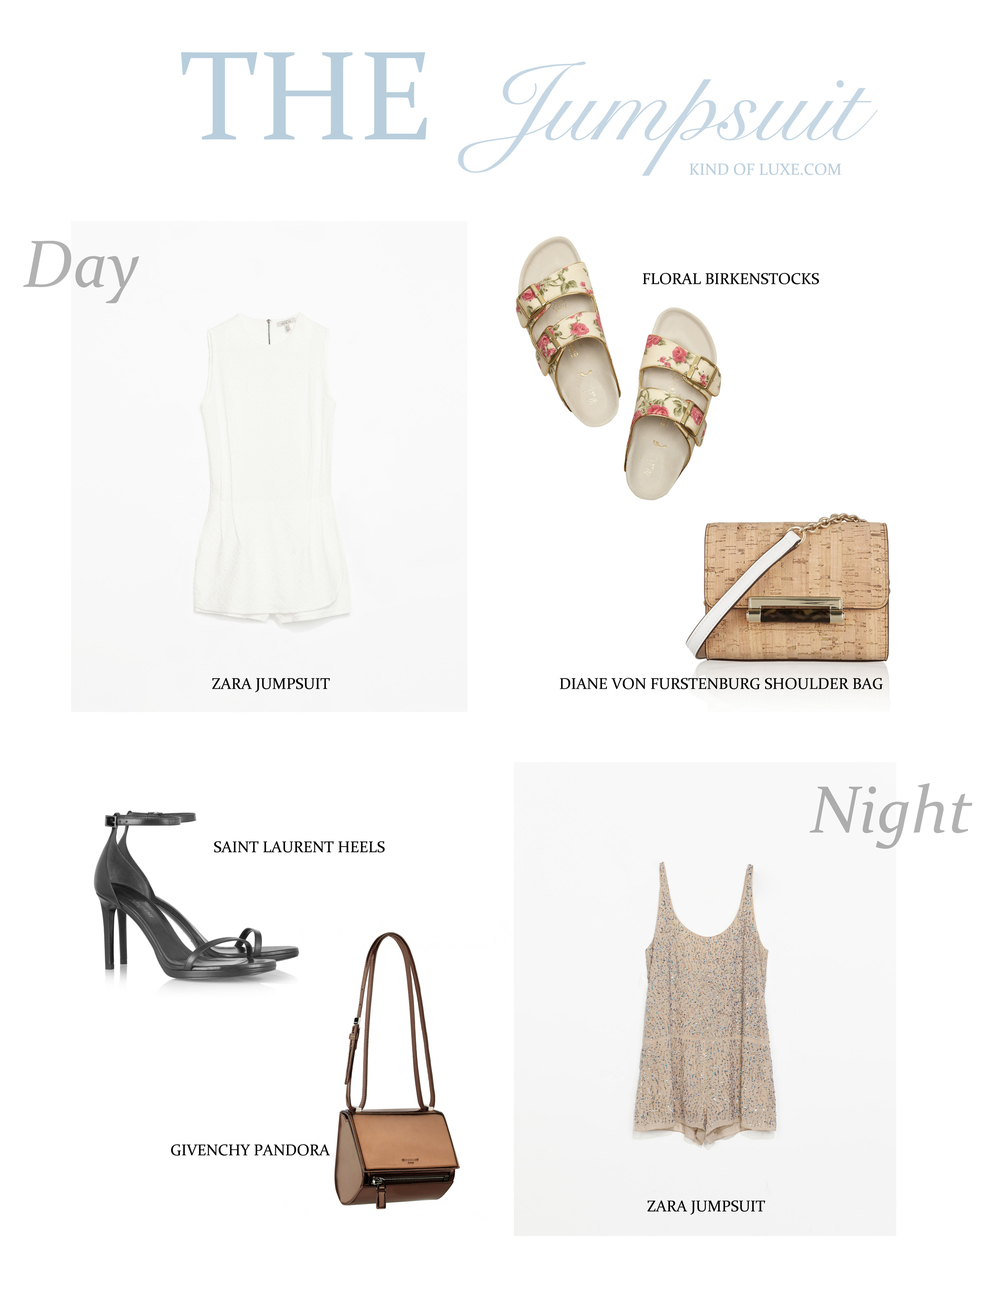 ZARA_JUMPSUIT_SUMMER_DAY_NIGHT_KindOfLuxe.com.jpg